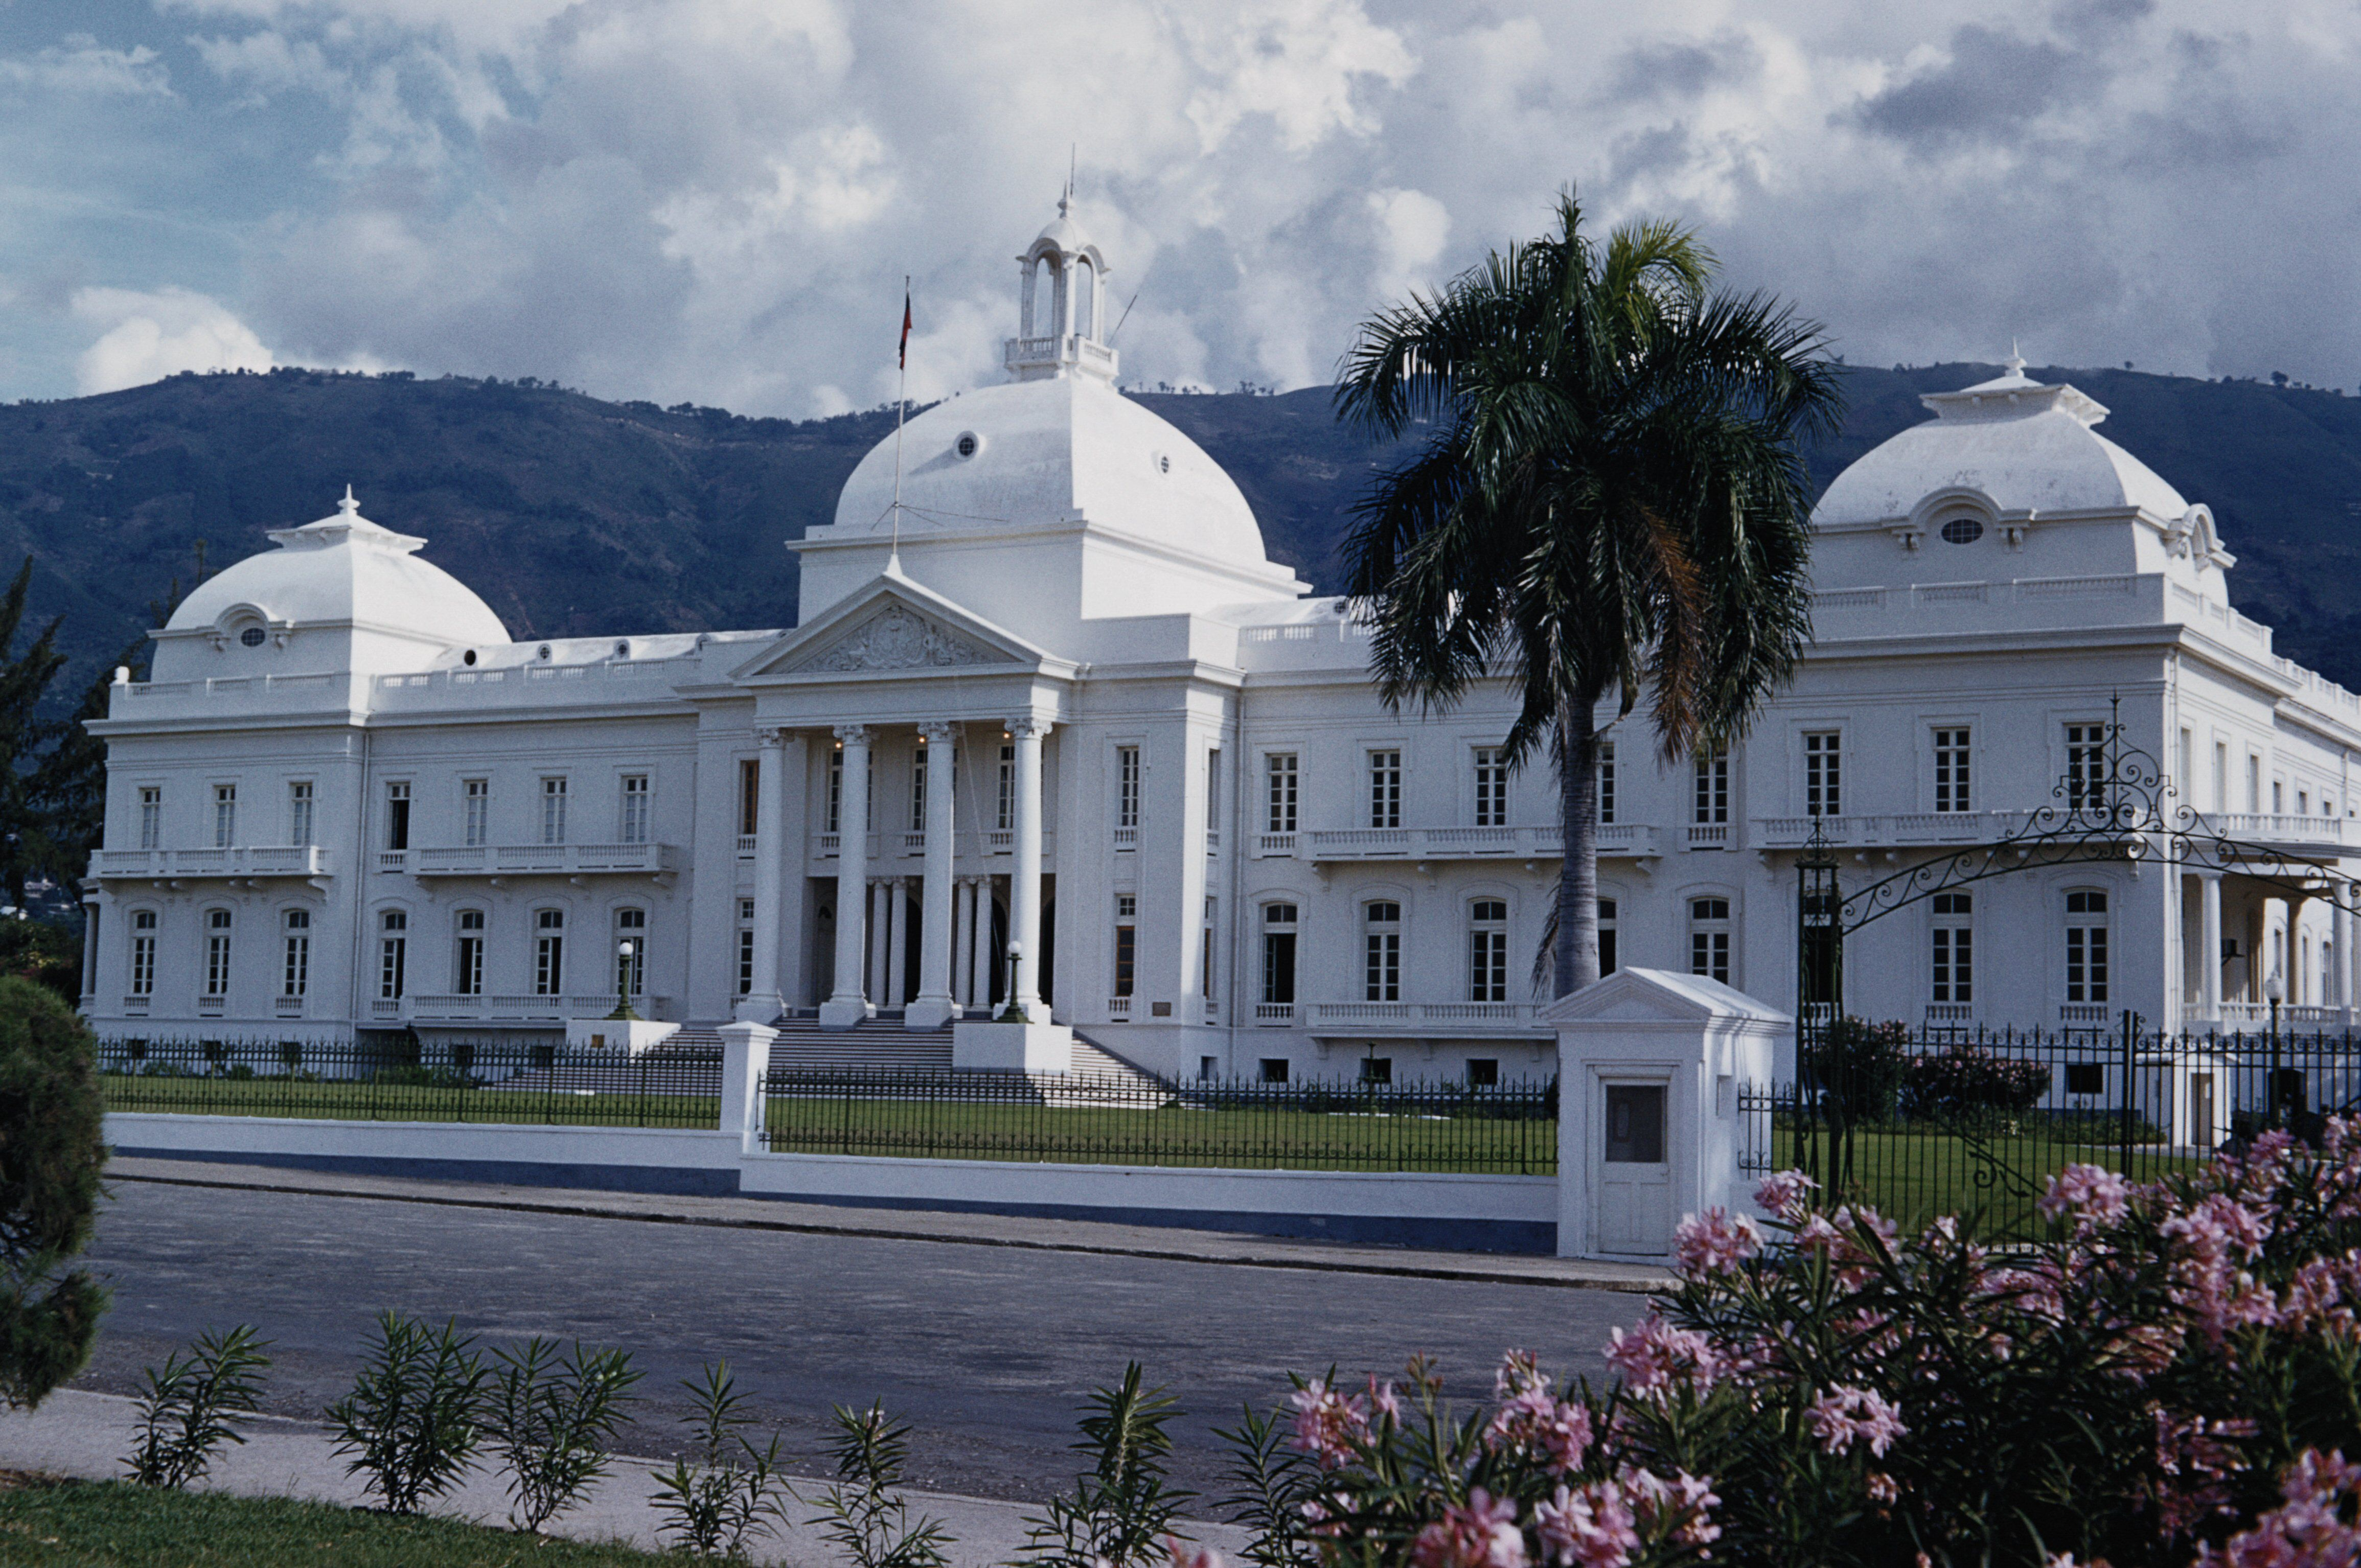 white-colored palace with three domes, symmetrical, center portico with pediment and columns